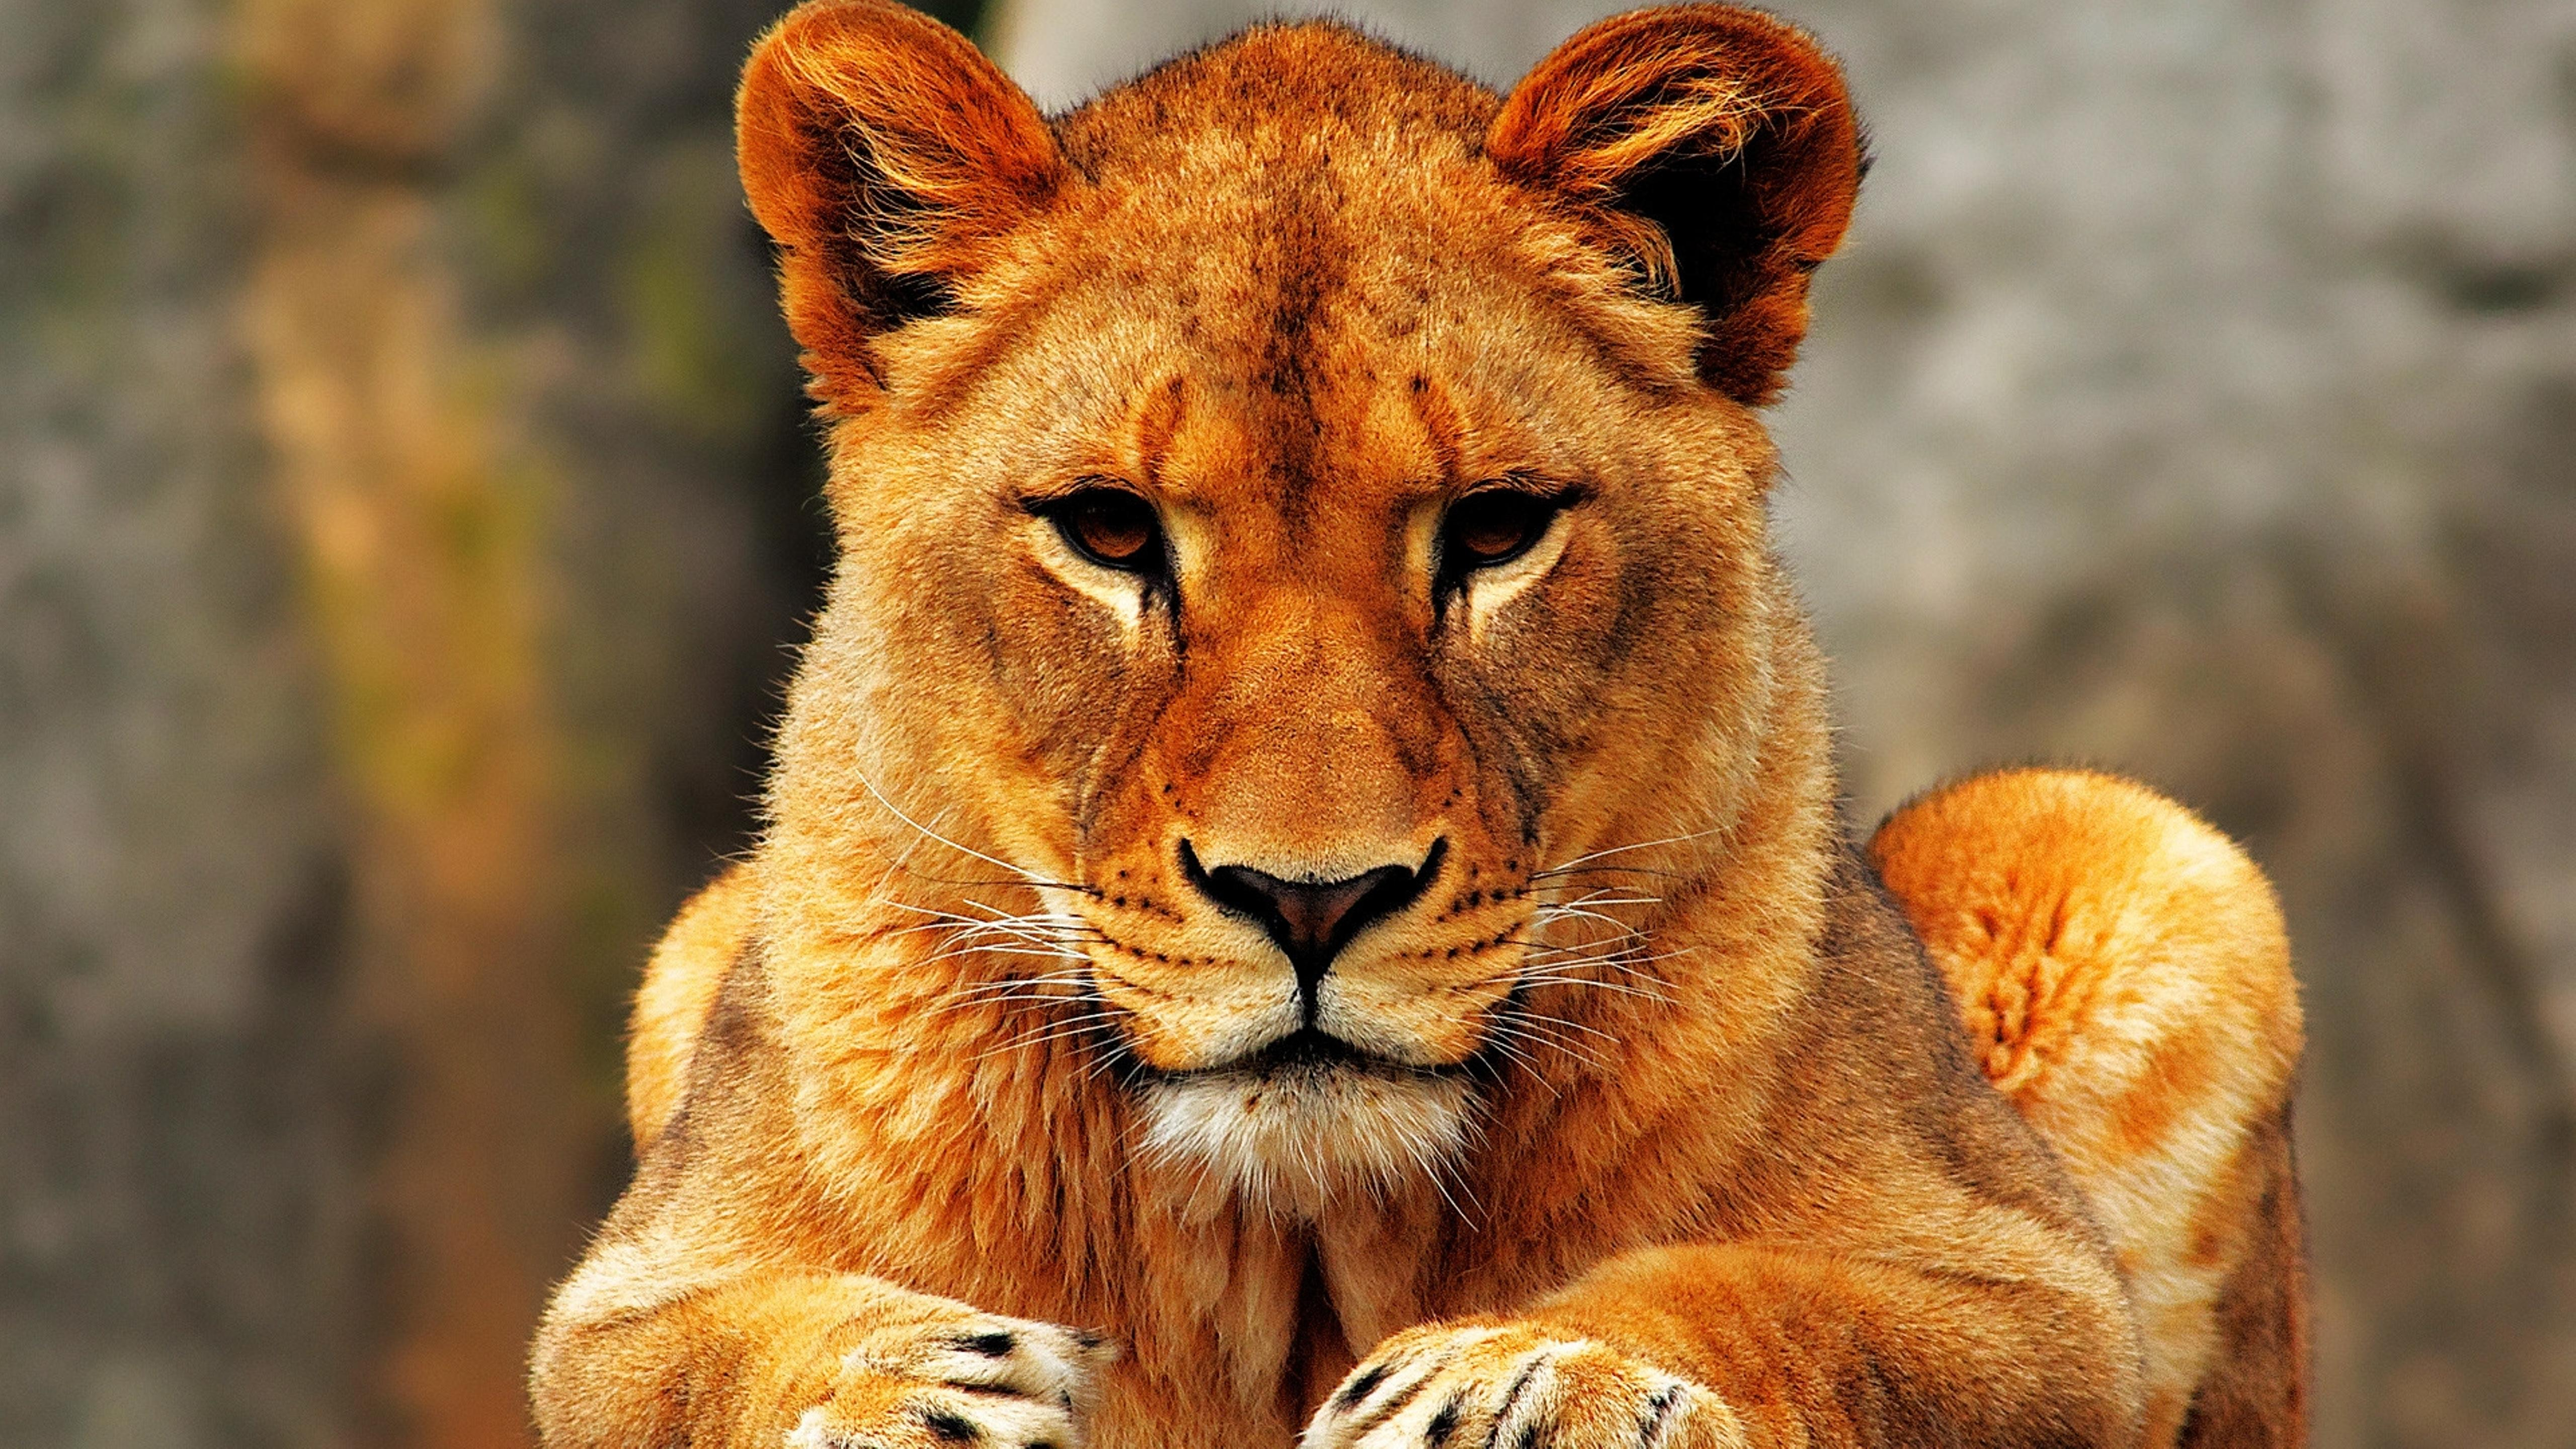 Wallpaper download lion - Seriously Lion Female Wild Animal Wallpaper Wallpaper Download 5120x2880